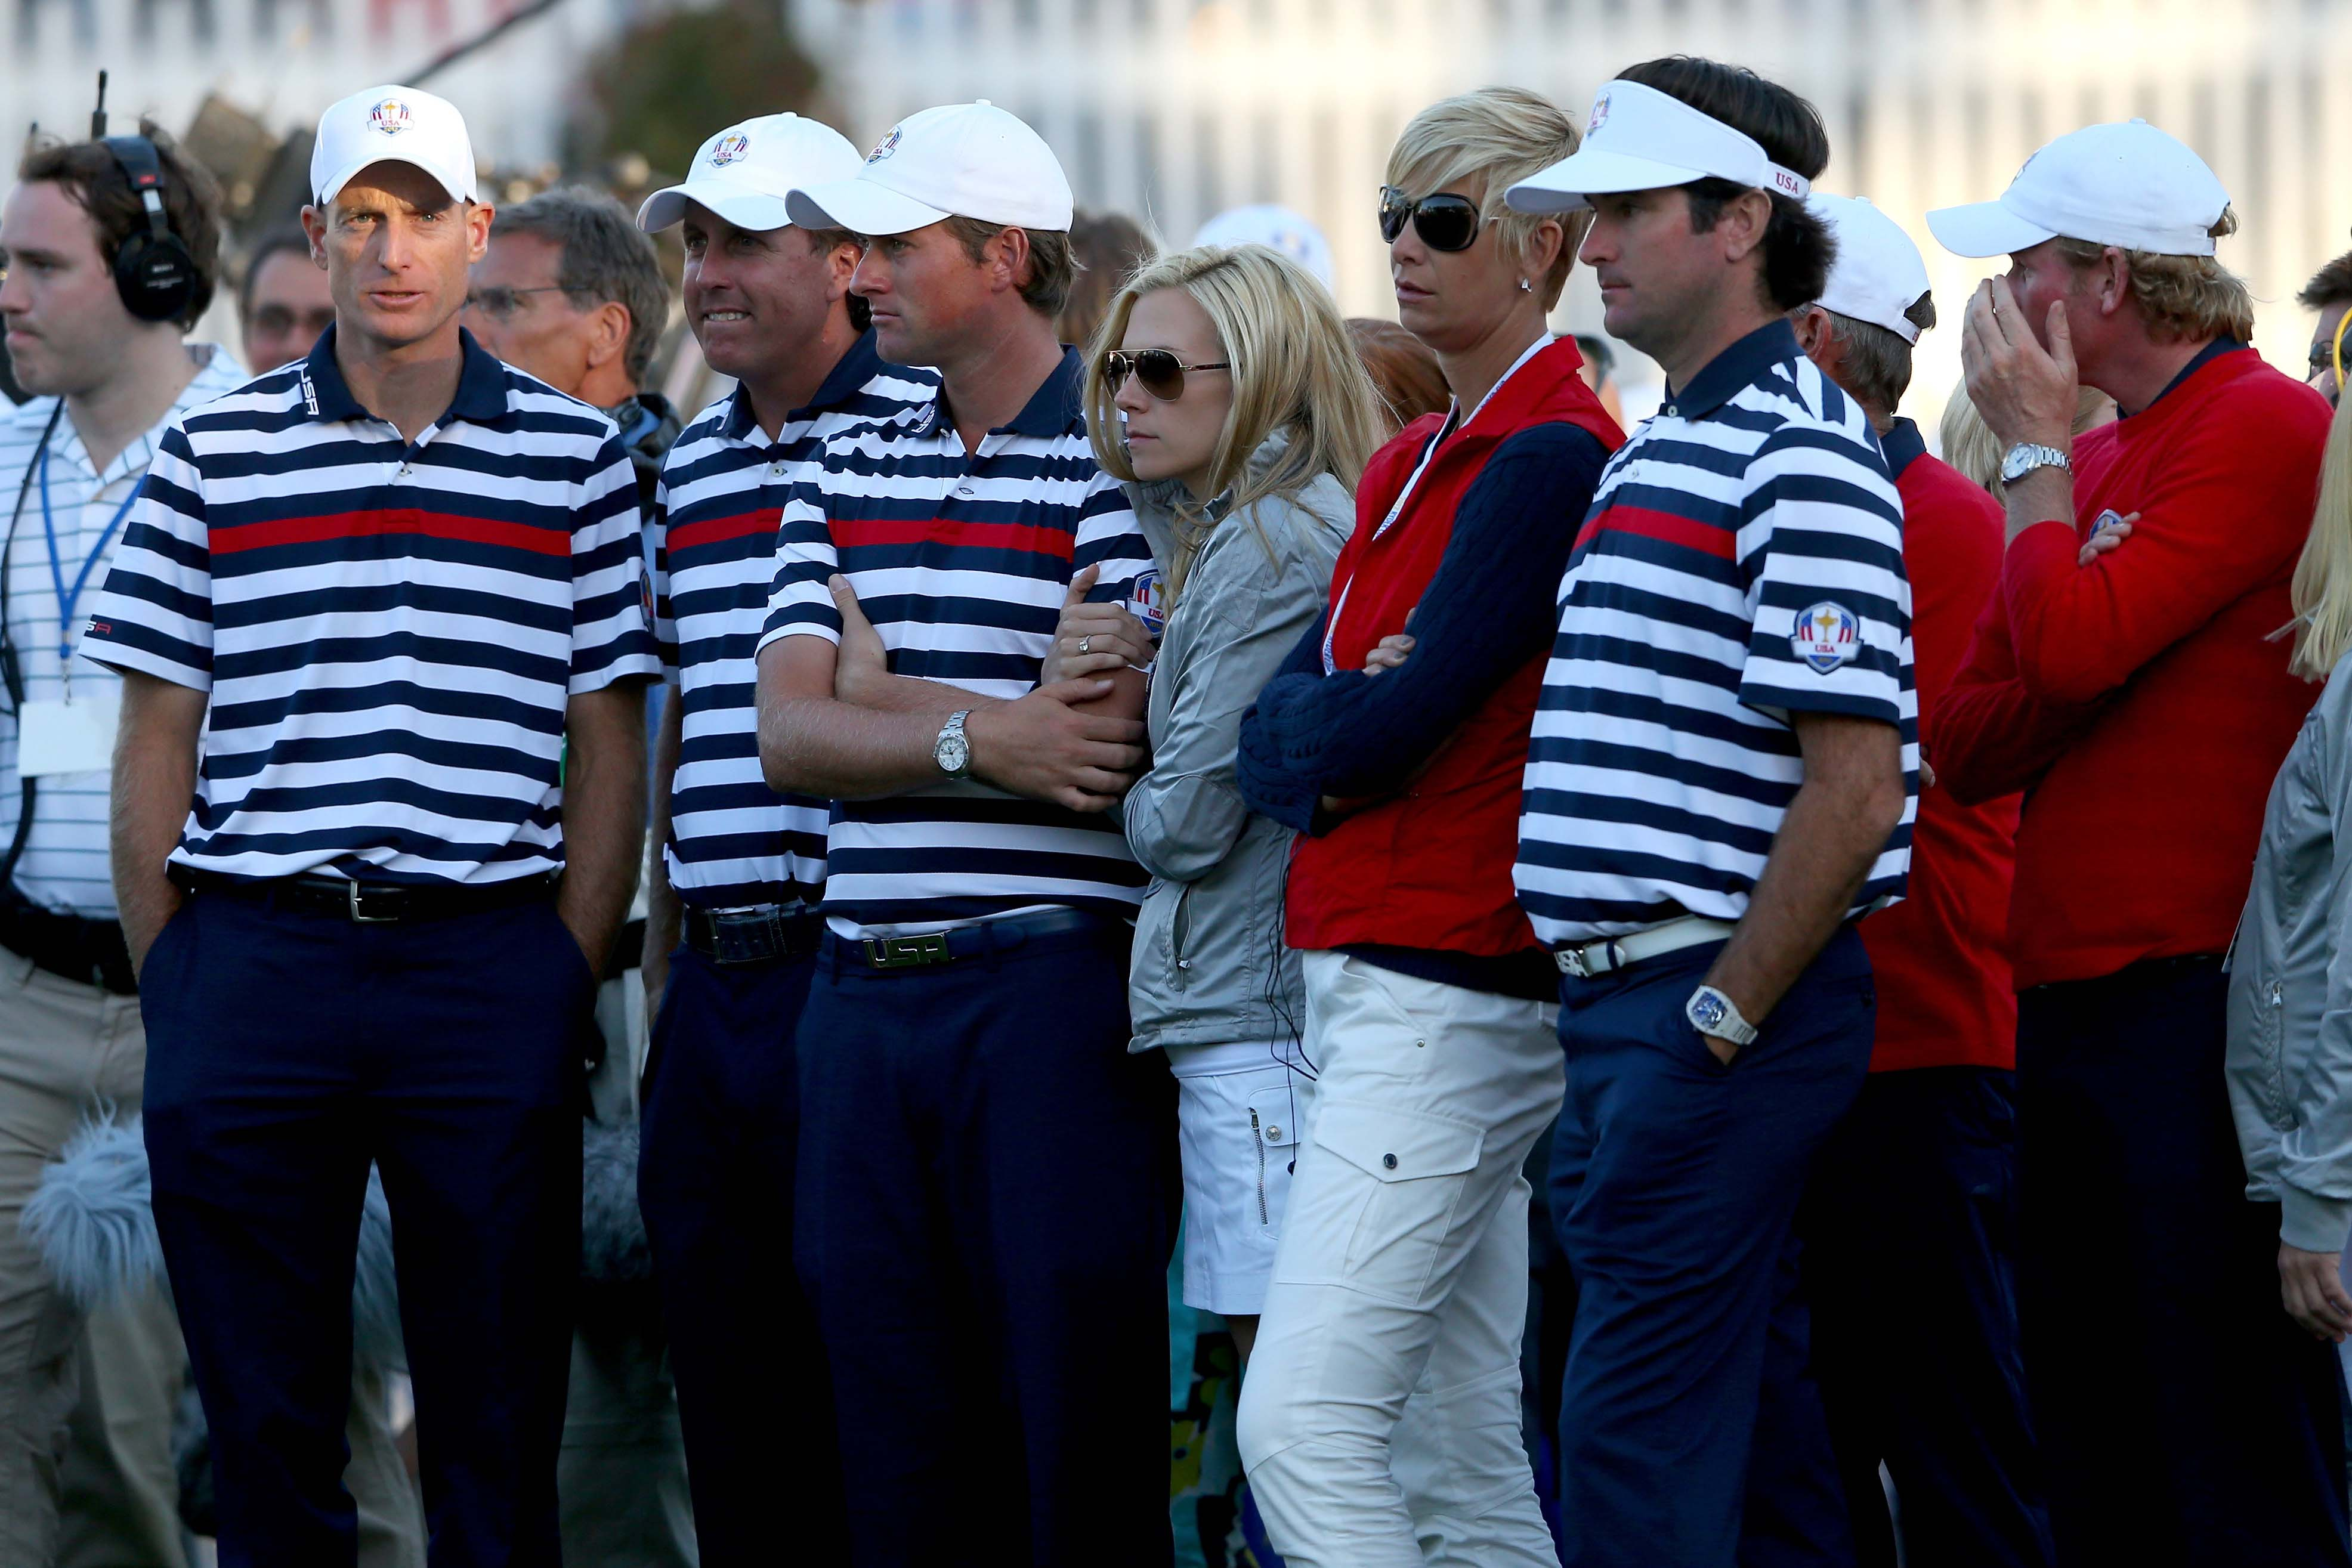 (L-R) Jim Furyk, Phil Mickelson, Webb Simpson and Bubba Watson